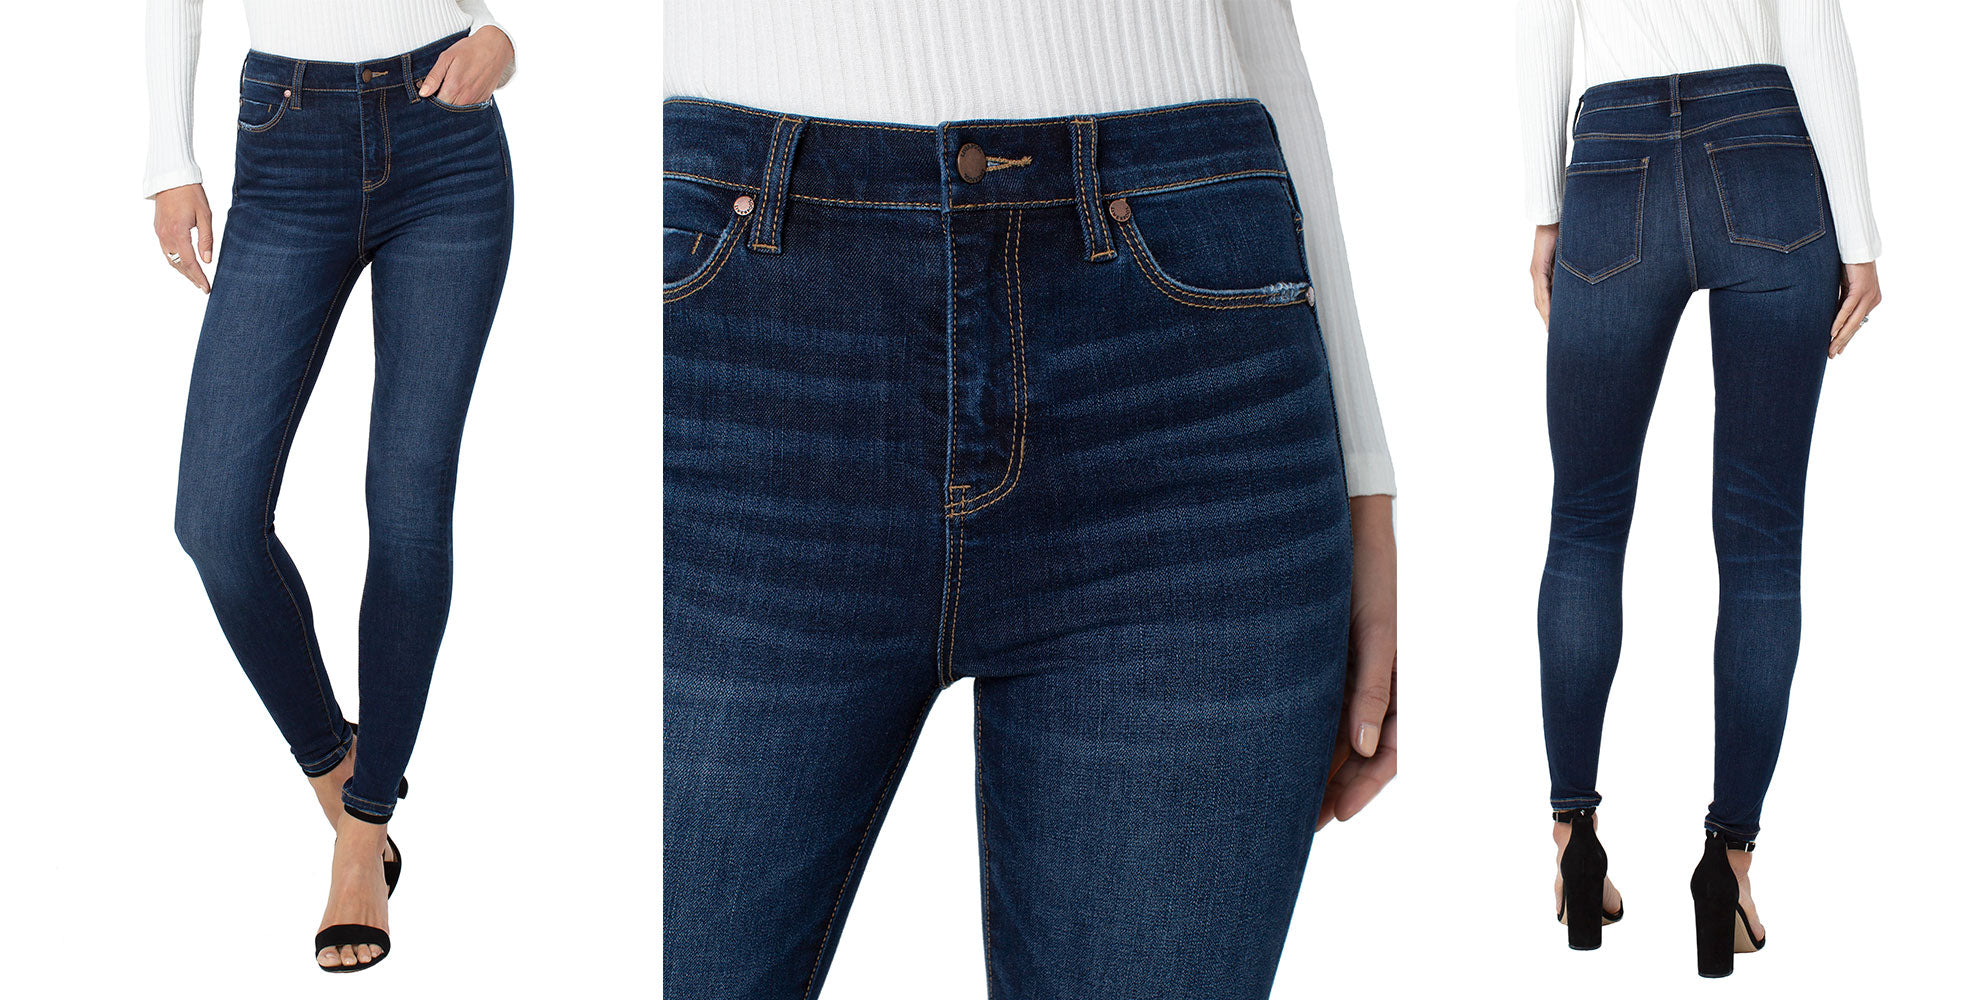 LIVERPOOL ECO ABBY HI-RISE SKINNY IN COLLINS